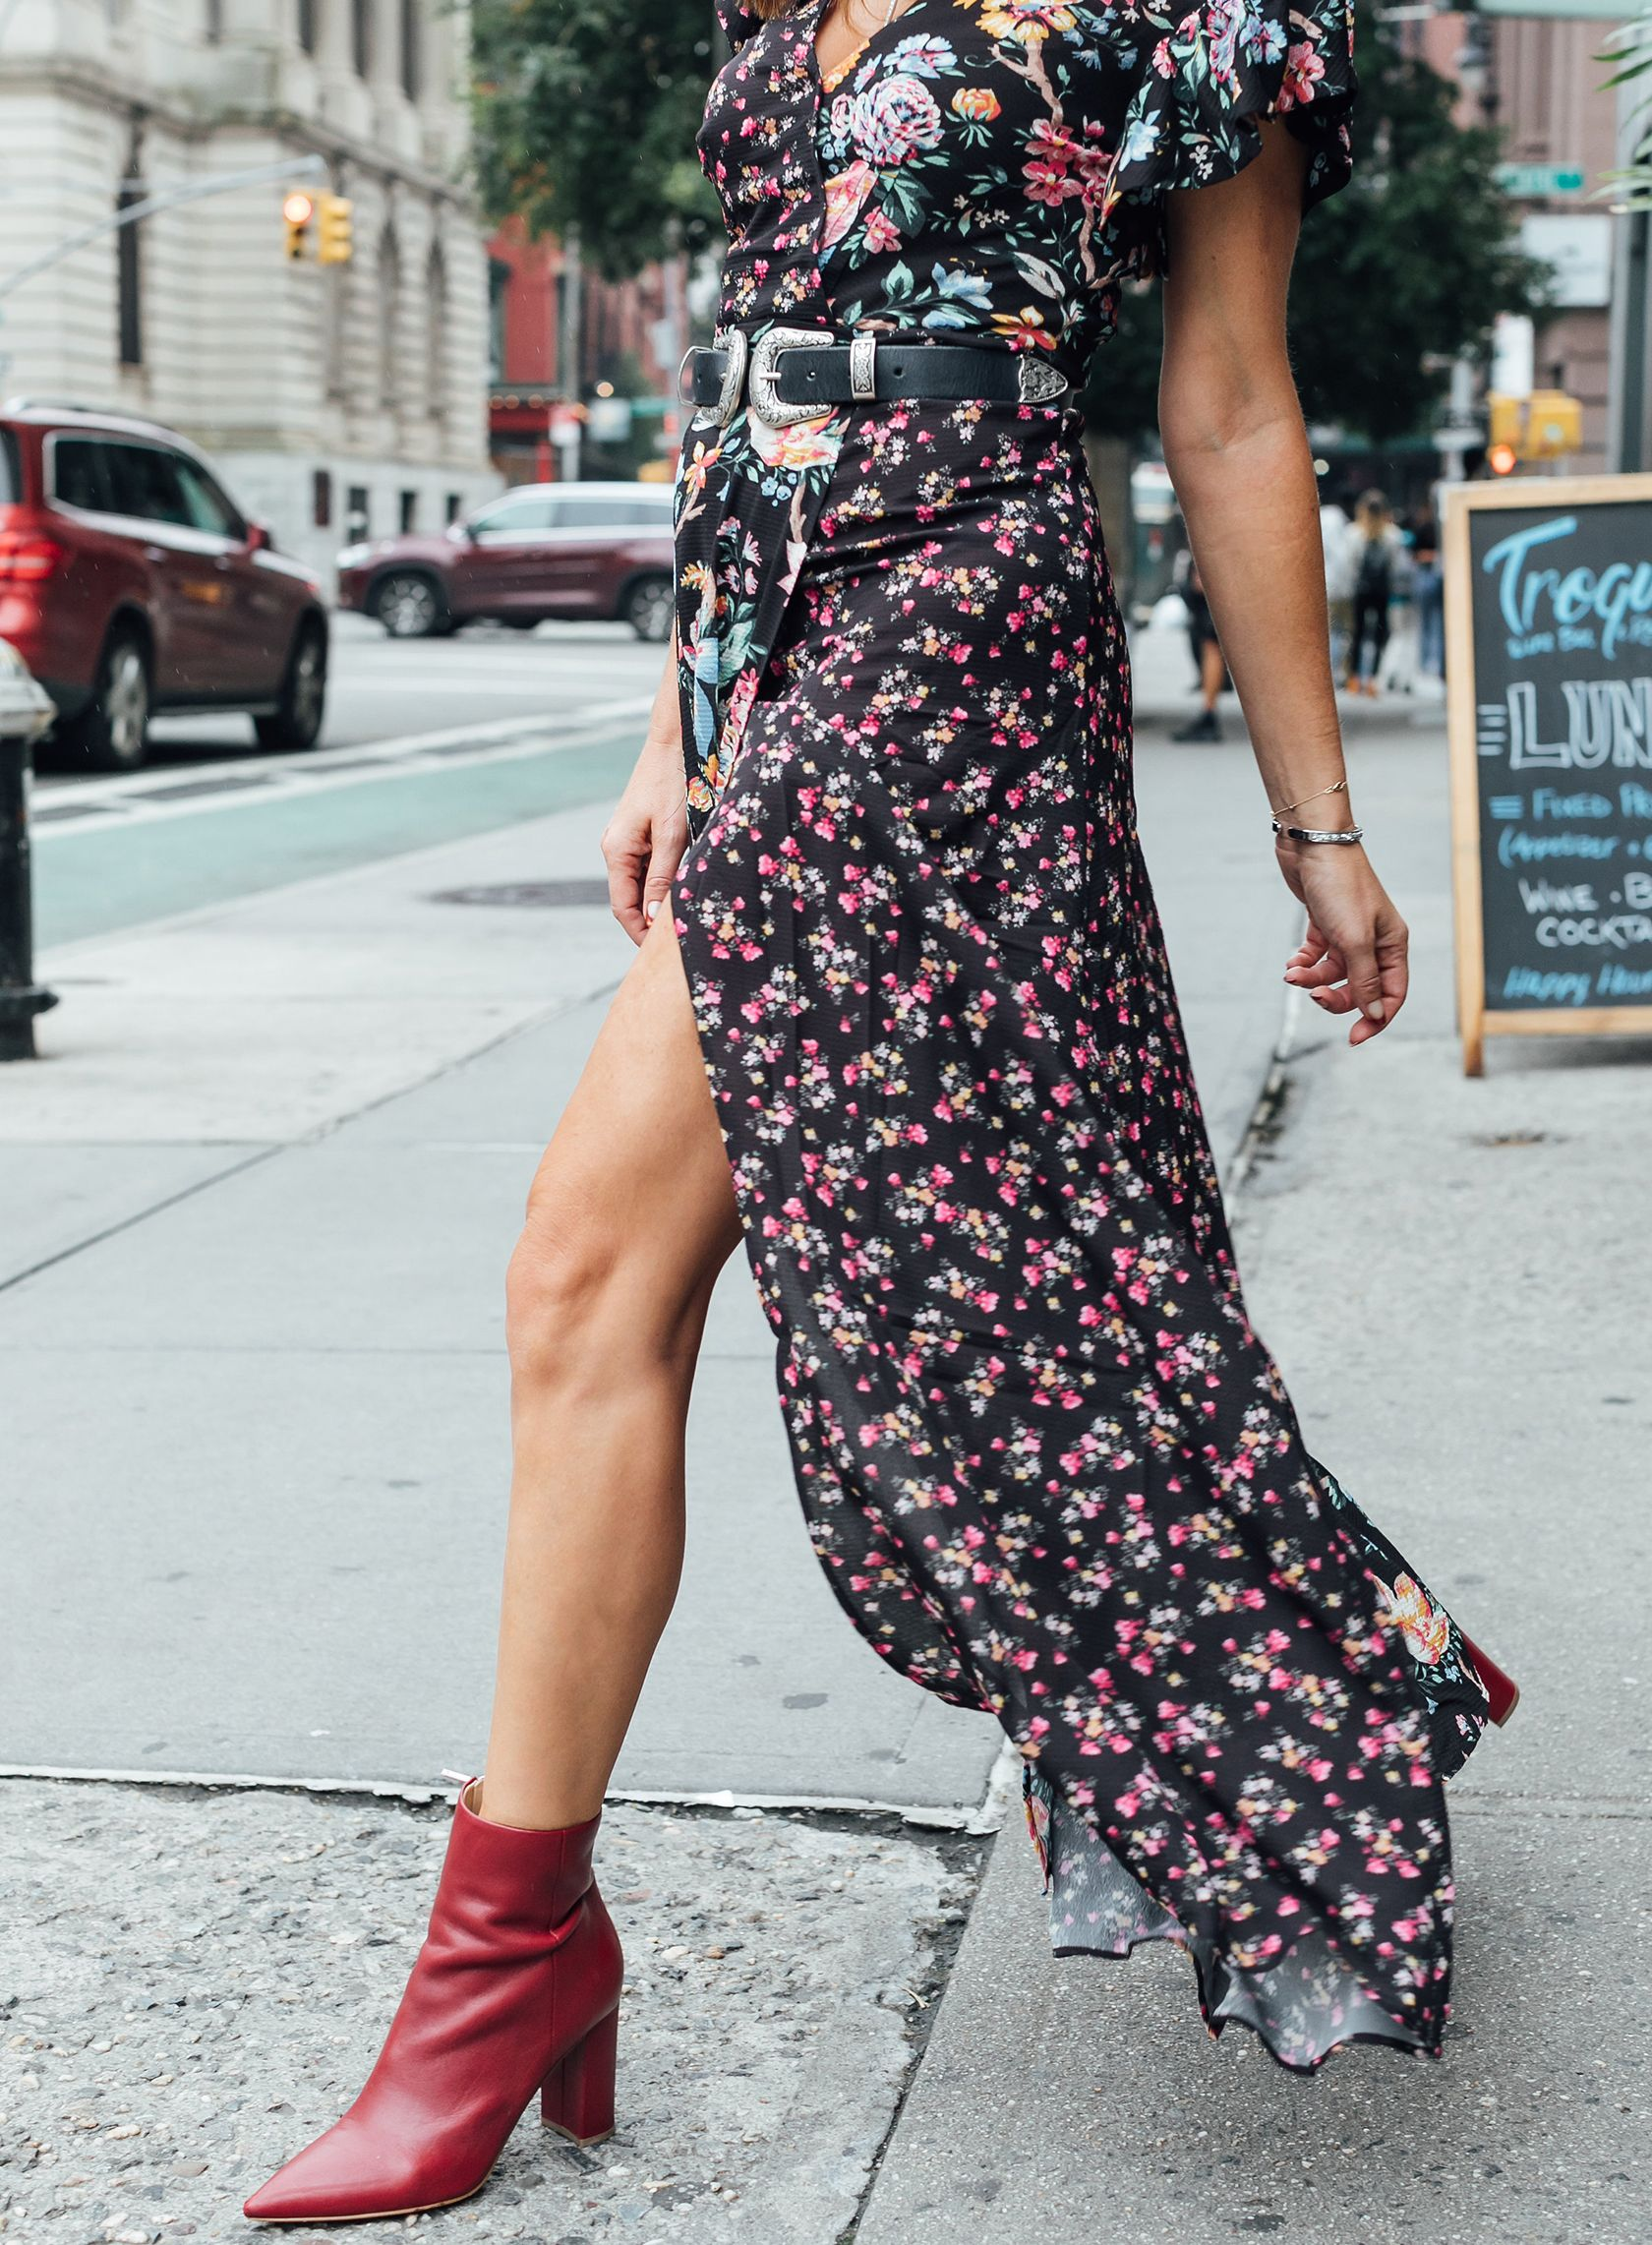 c6965875fd7 Sydne Style wears marc fisher ulani bootie for fall shoe trends  florals   western  booties  sydnesummer